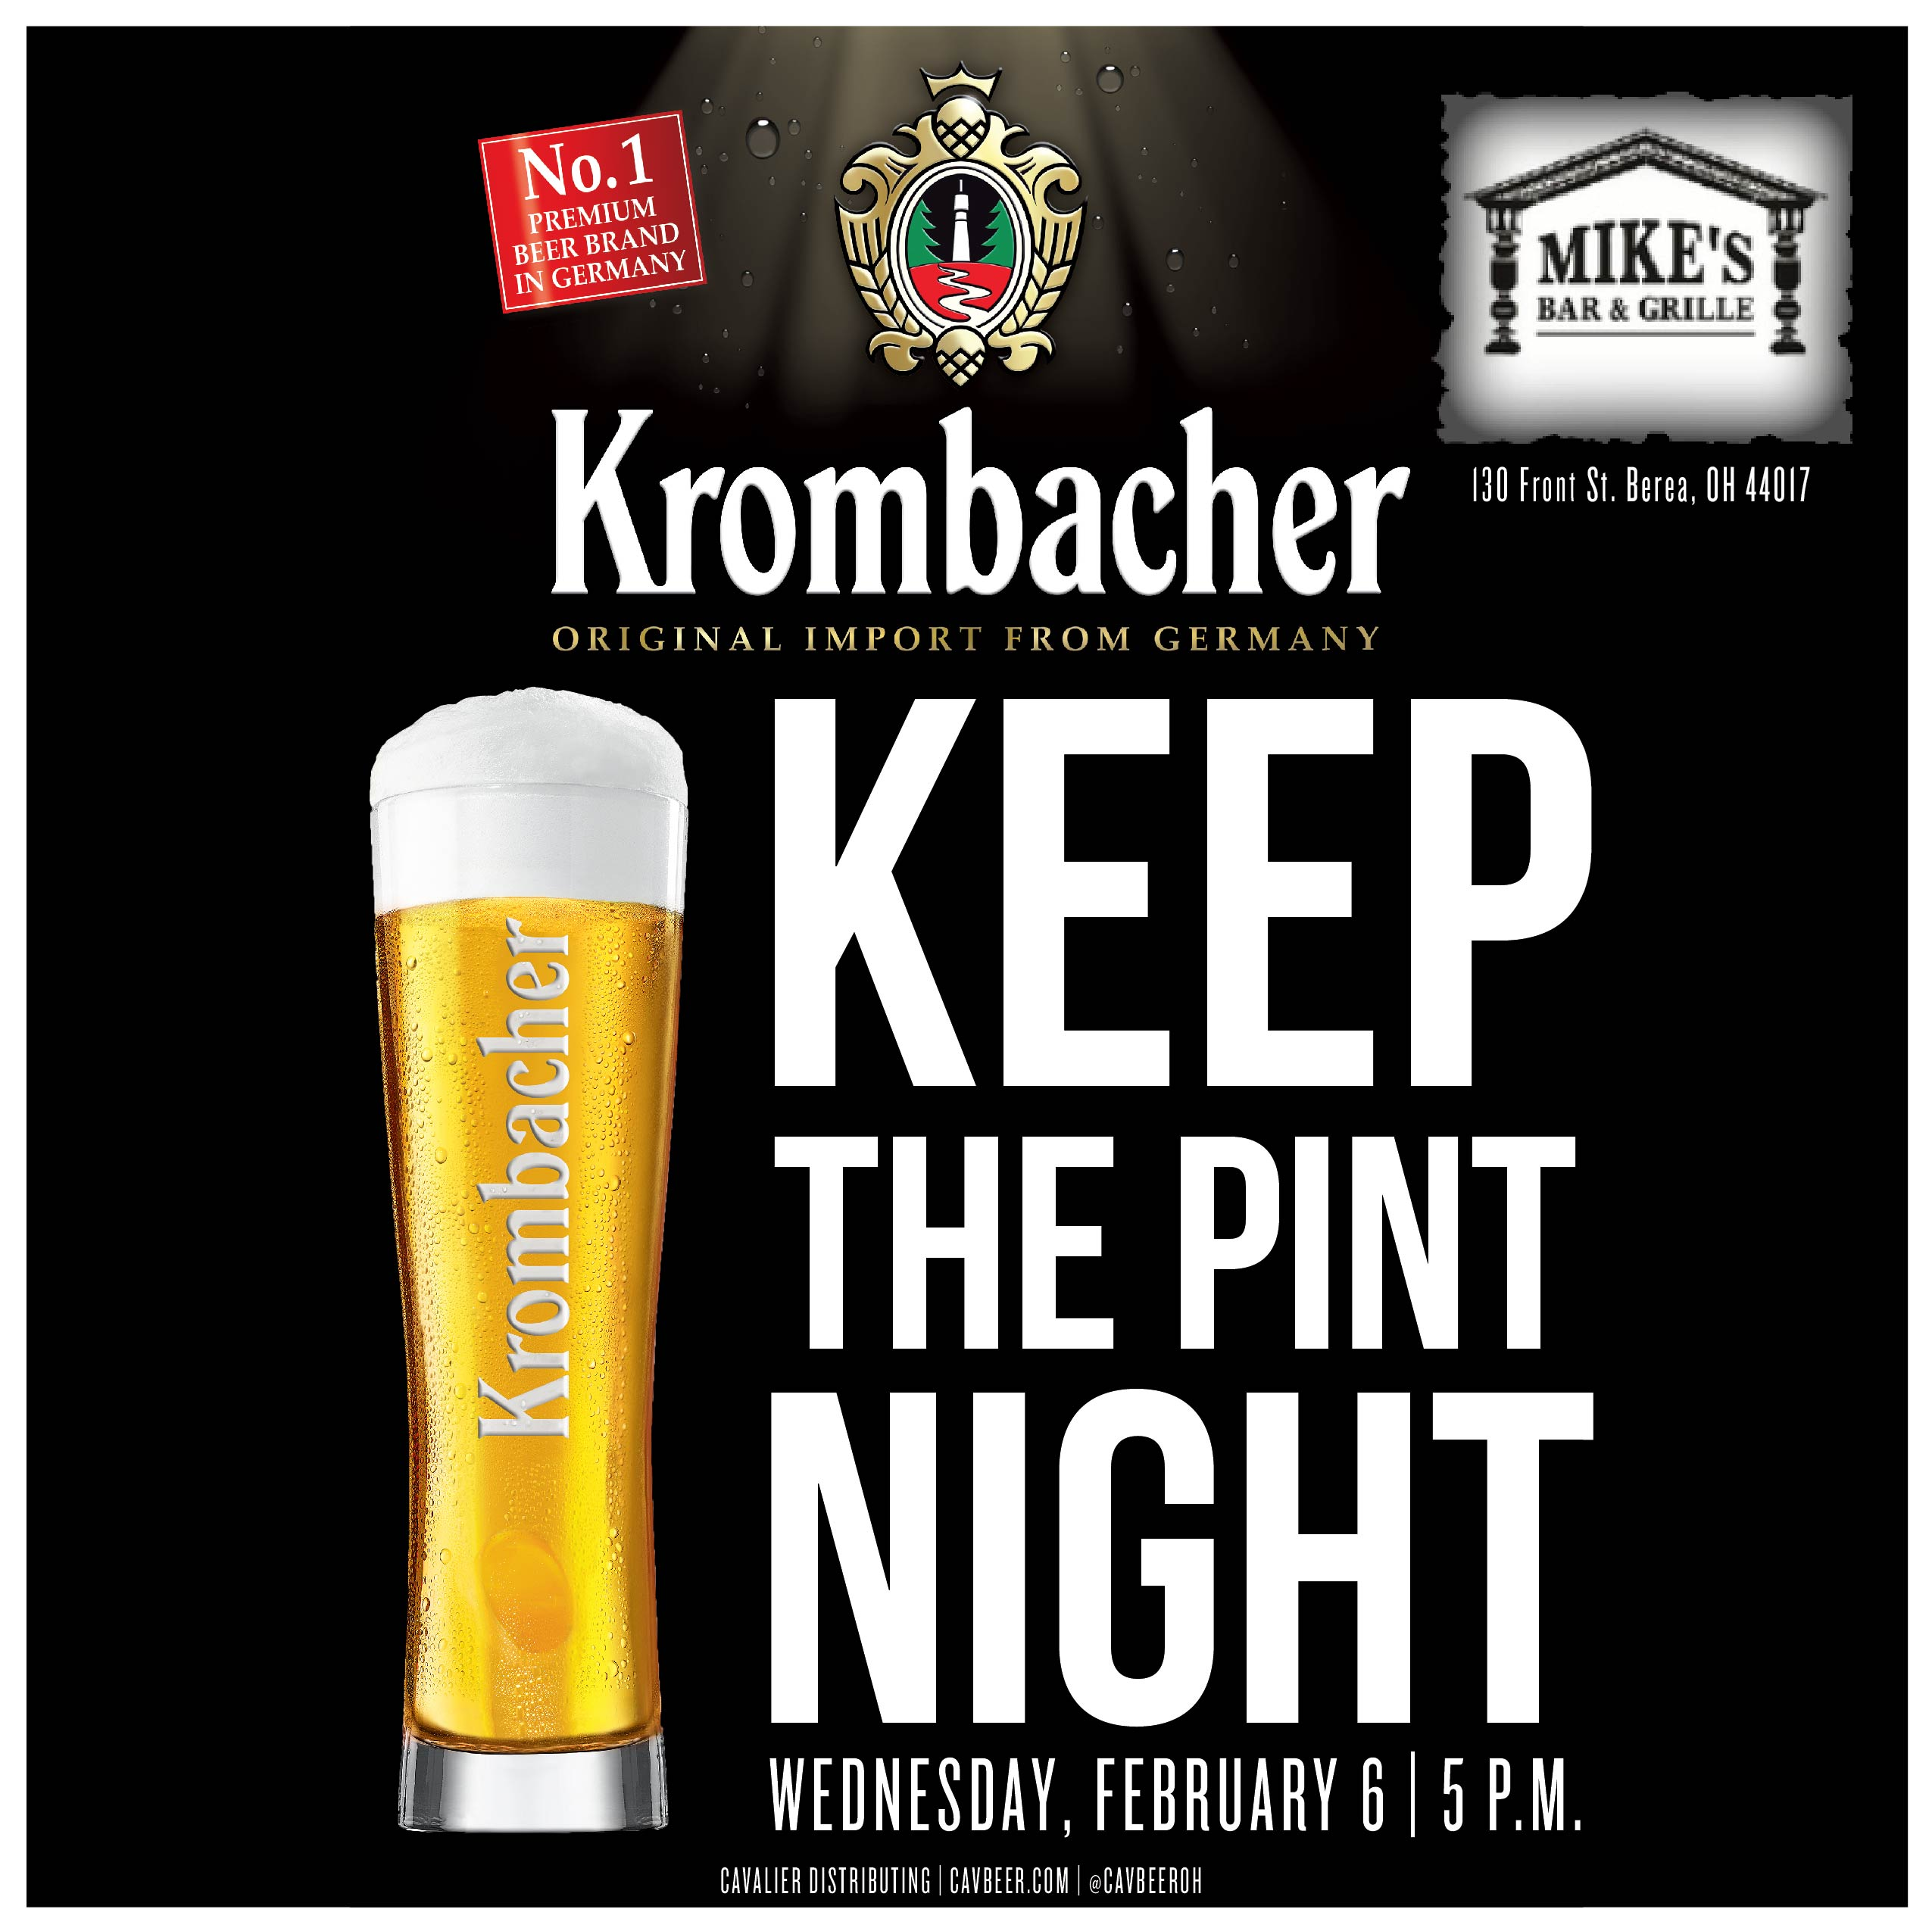 Krombacher Keep the Pint Night @ Mike's Bar & Grille